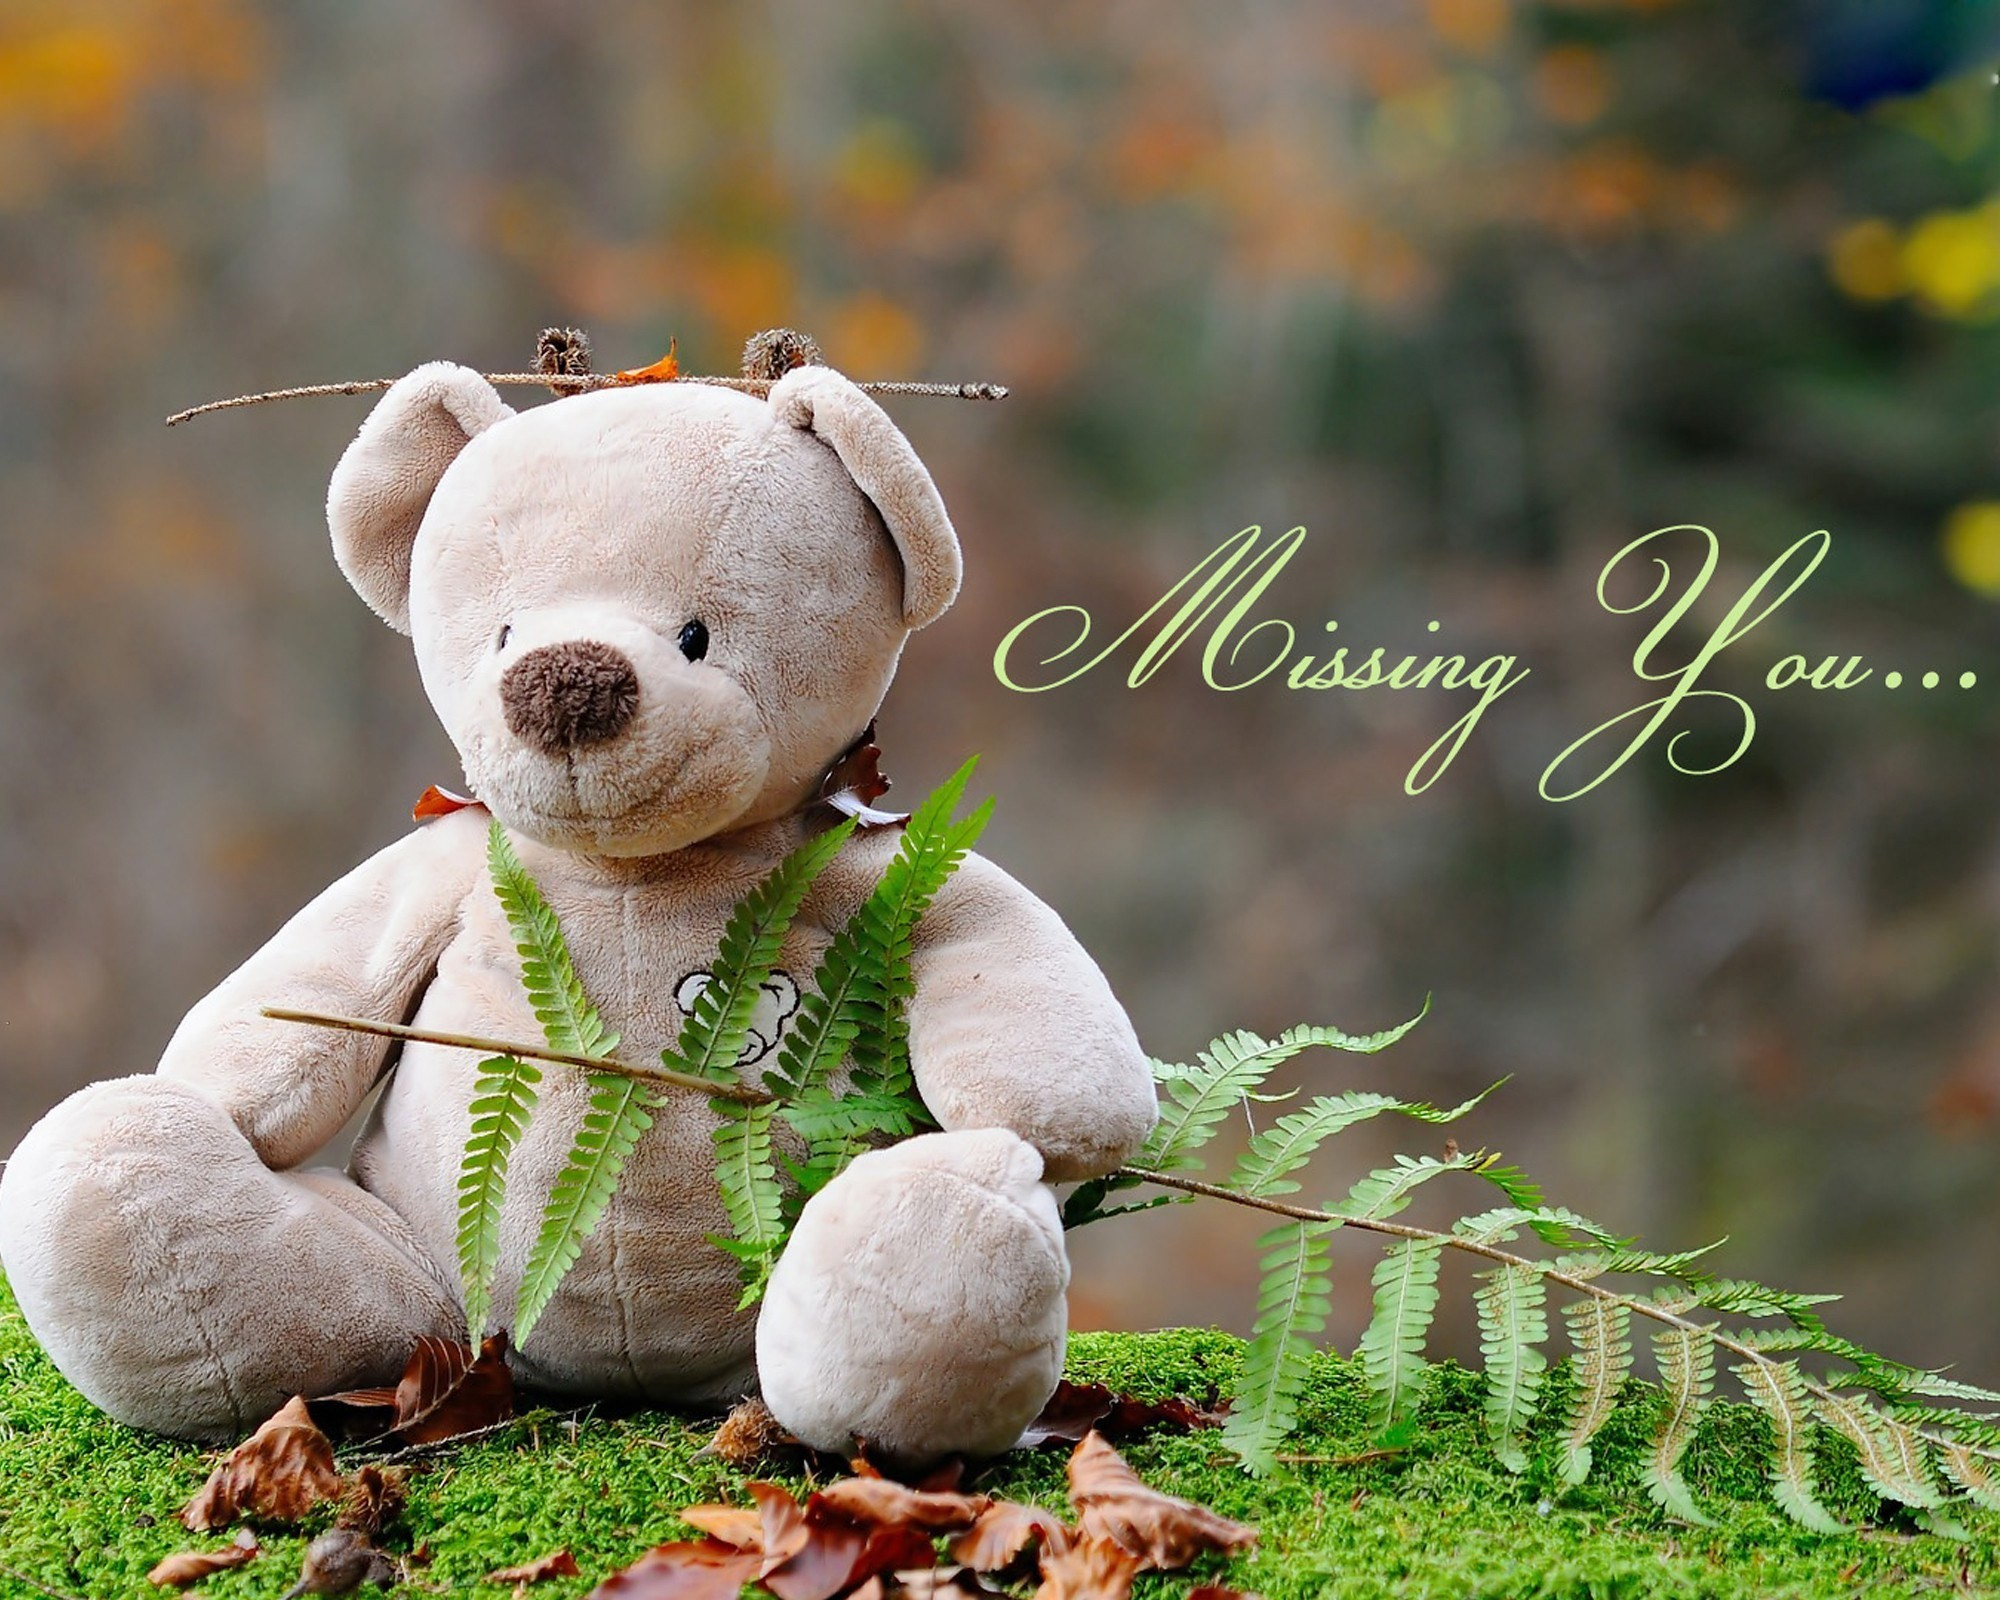 Cute teddy bears wallpapers 59 images 2048x2048 download preview voltagebd Gallery